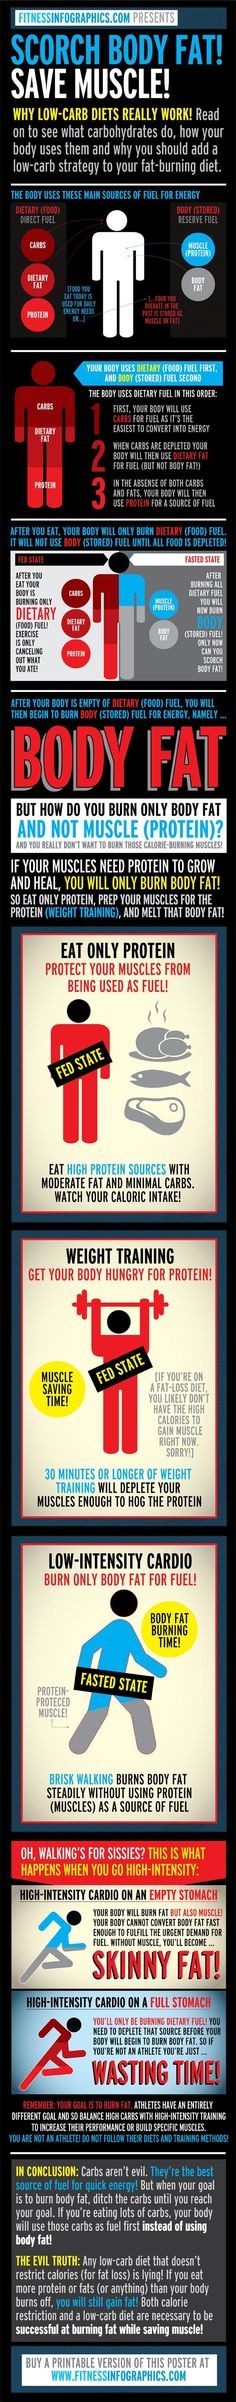 Eat STOP Eat - Scorch Body Fat, Save Muscle Infographic: How bodies burn fat, what/when to train/eat - In Just One Day This Simple Strategy Frees You From Complicated Diet Rules - And Eliminates Rebound Weight Gain Nutrition Crossfit, Sport Nutrition, Nutrition Sportive, Nutrition Plate, Fruit Nutrition, Nutrition Month, Nutrition Tips, Fat Loss Diet, Weight Loss Diet Plan